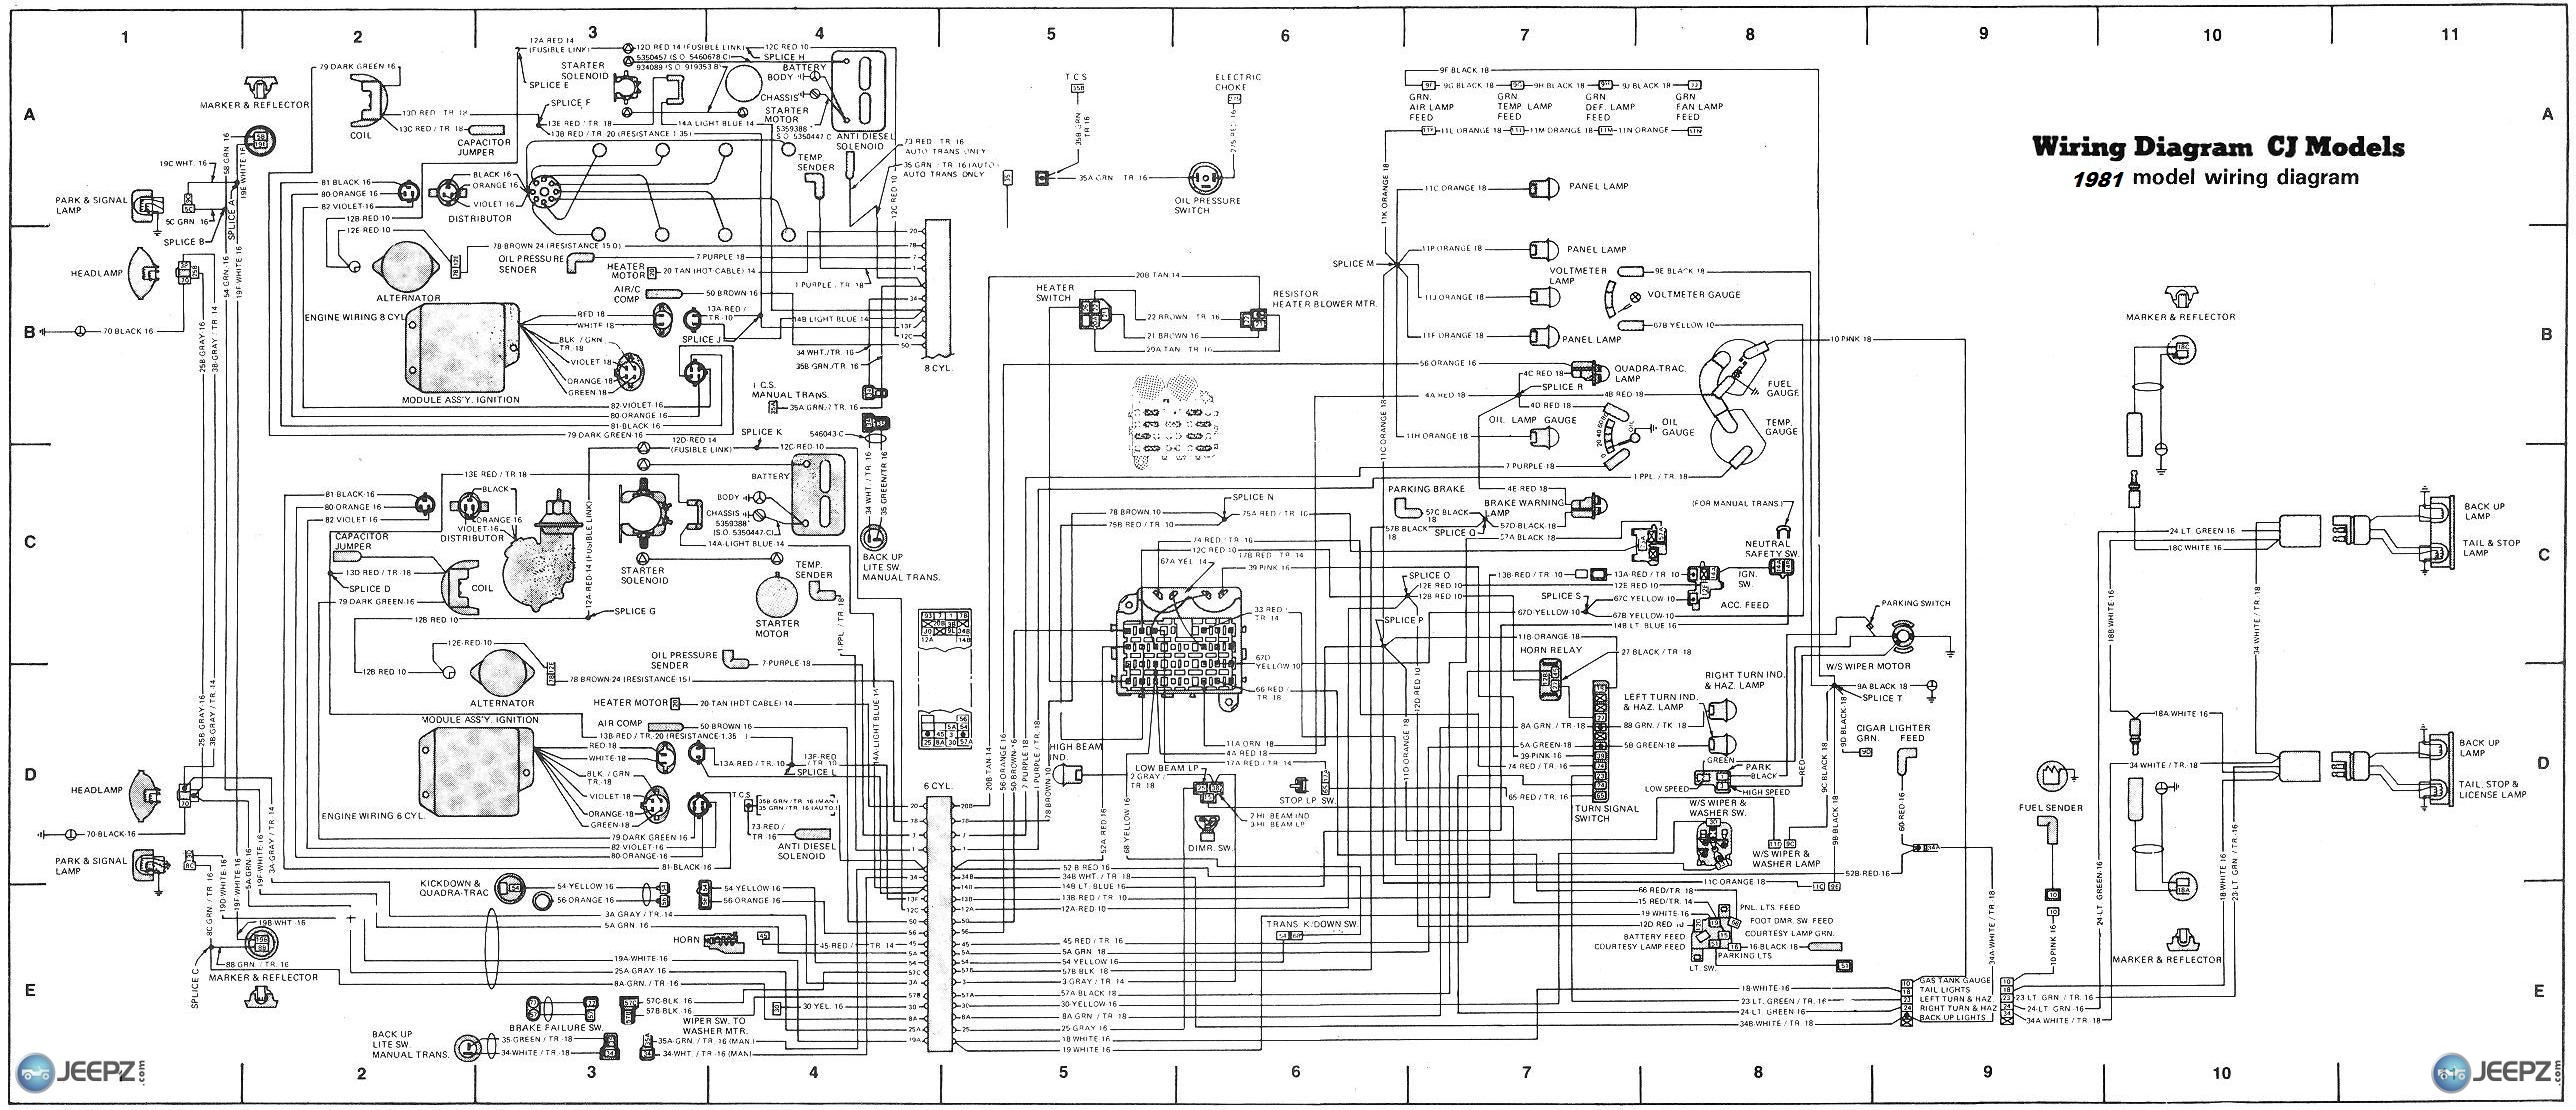 ... 7993d1301845049 cj 7 wire diagram cj wiring diagram  1981?resized665%2C2876ssld1 opel corsa b